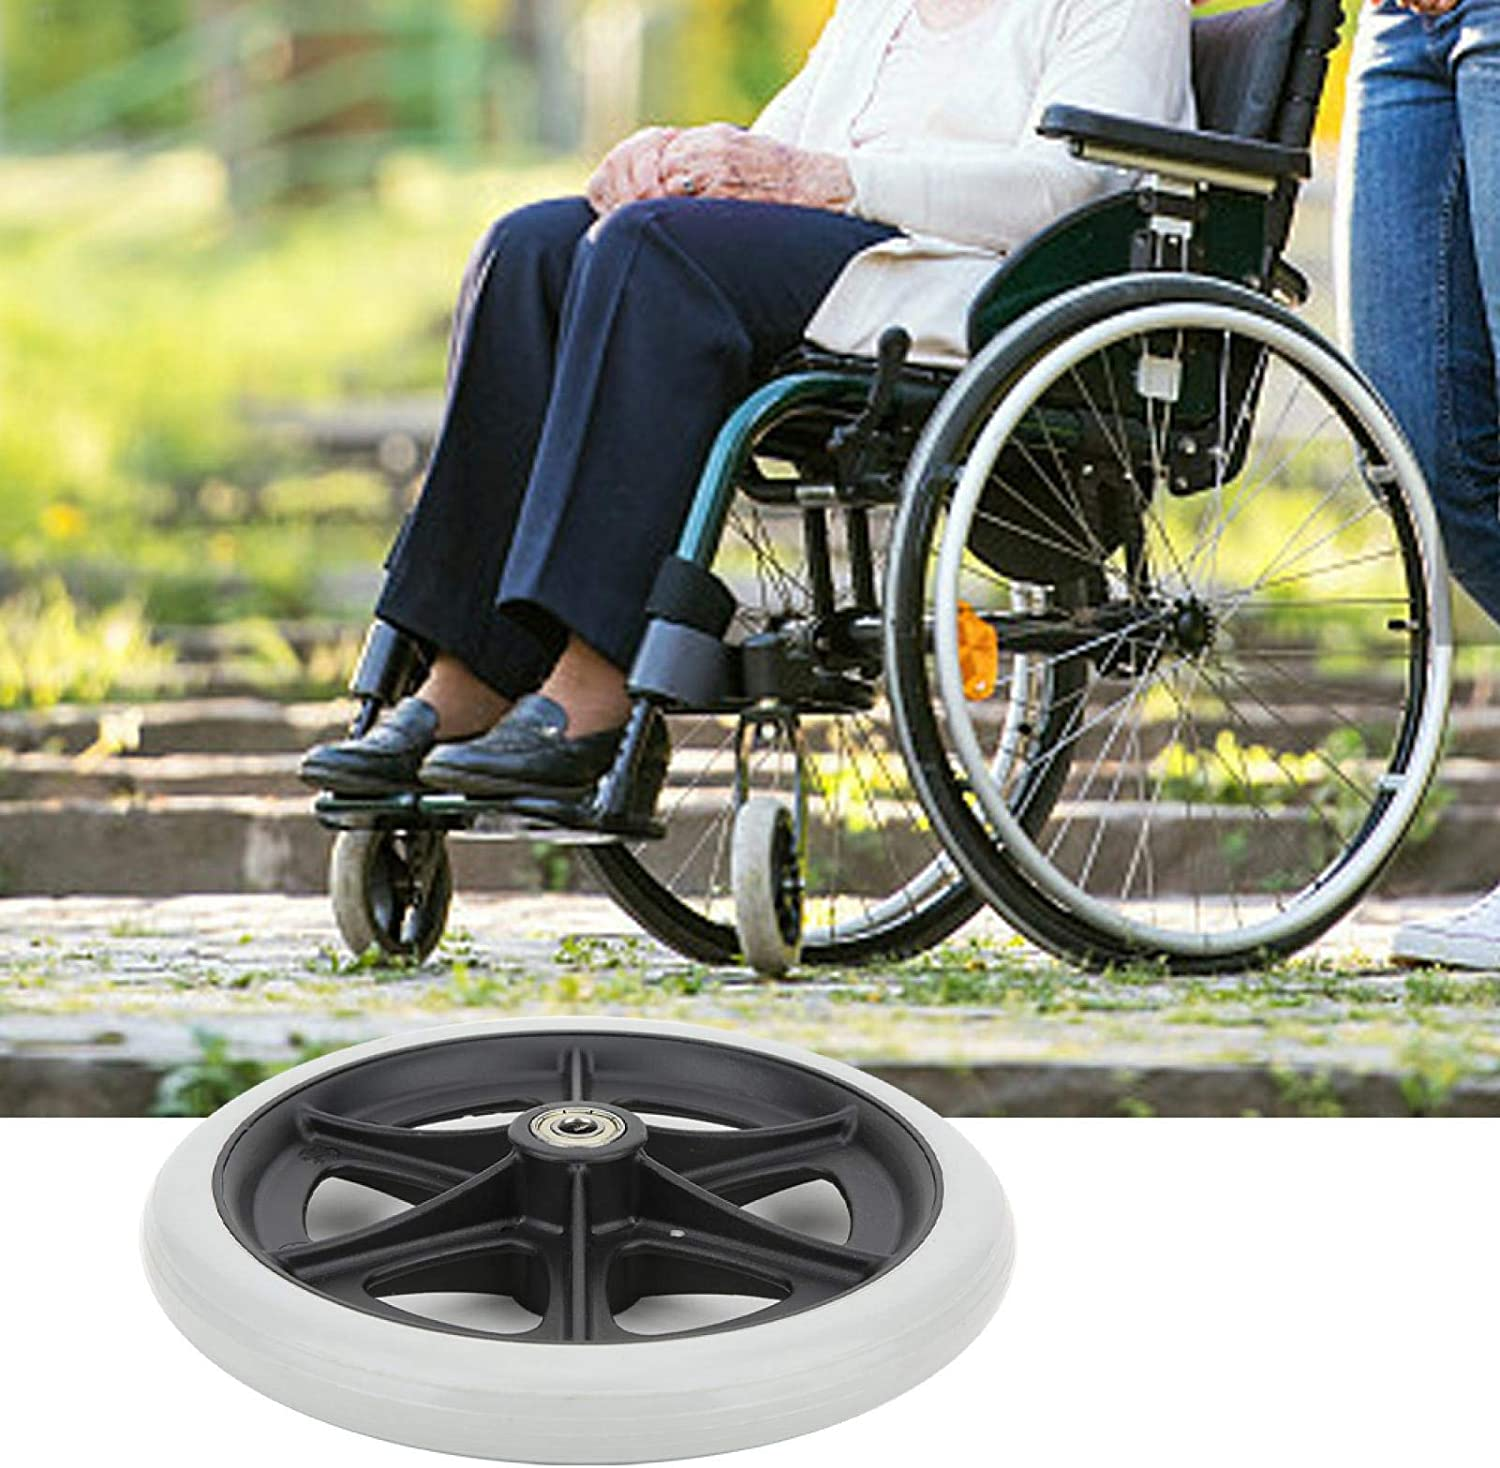 Wheelchair Front Wheels 8 Practica quality assurance Max 48% OFF Inch